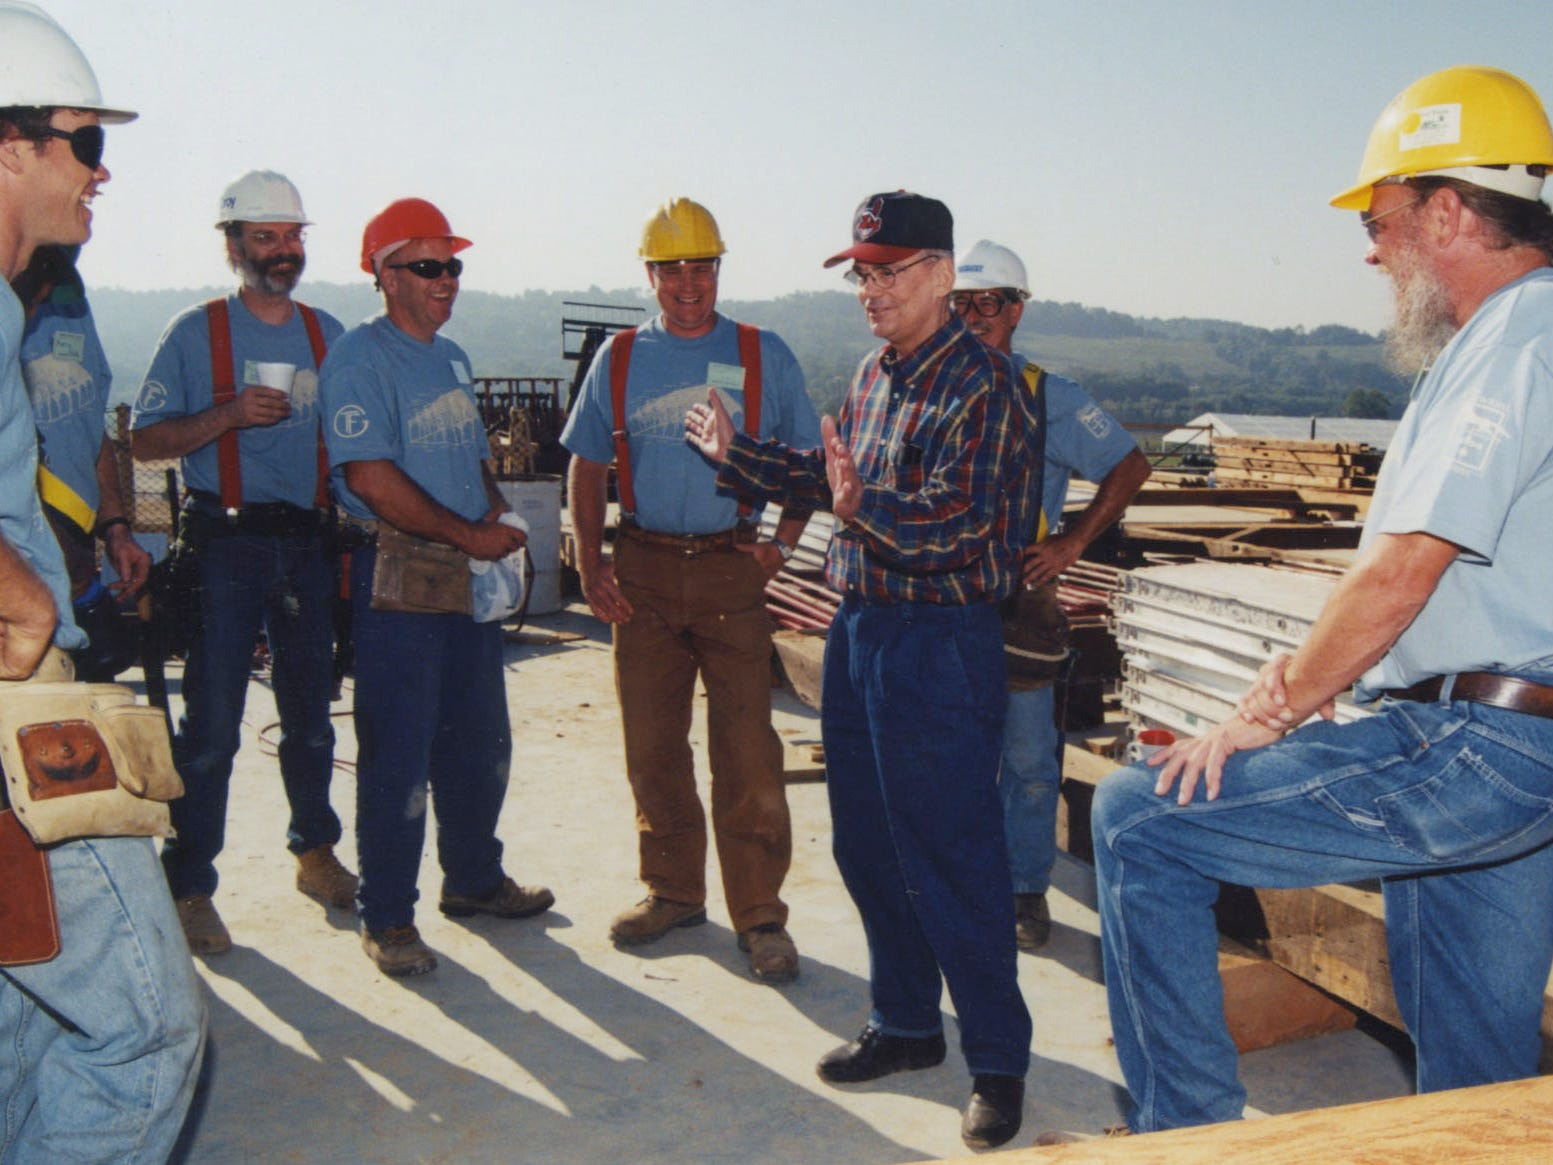 Dave Longaberger talks with construction workers at one of the many Longaberger buildings.